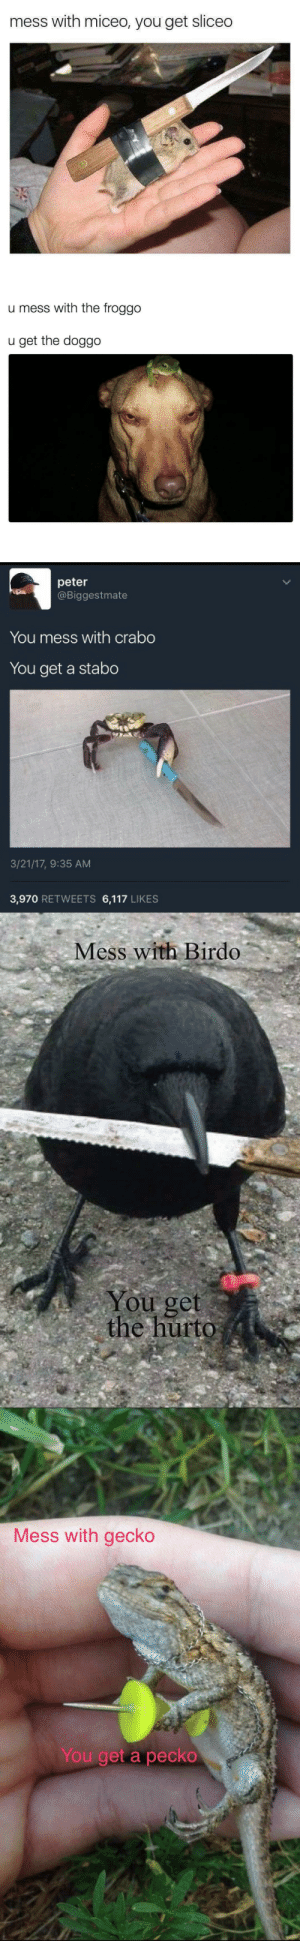 siiidon:  You forgot the best one yet : mess with miceo, you get sliceo   u mess with the froggo  u get the doggo   peter  @Biggestmate  You mess with crabo  You get a stabo  3/21/17, 9:35 AM  3,970 RETWEETS 6,117 LIKES   Mess with Birdo  You get  the hurto   Mess with gecko  You get a peck。 siiidon:  You forgot the best one yet